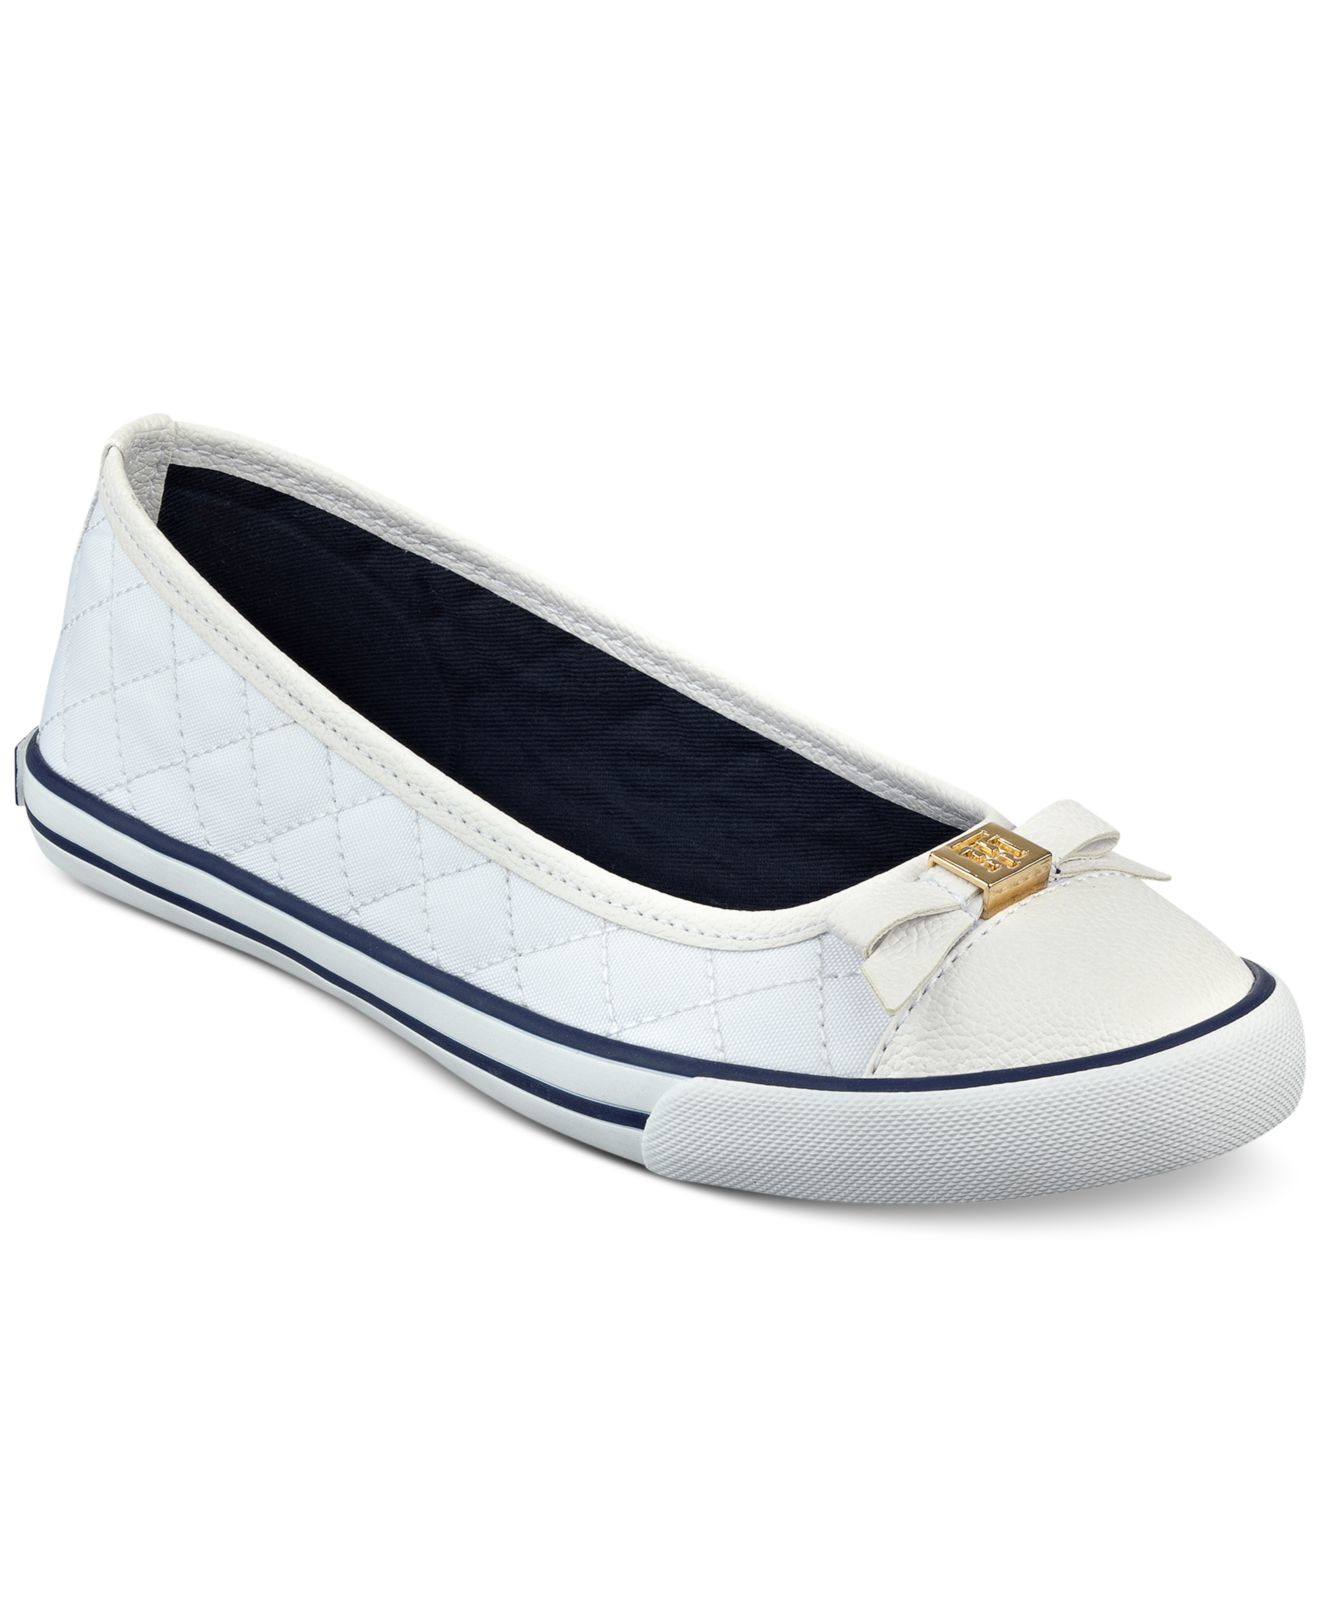 tommy hilfiger beth ballet flats in white lyst. Black Bedroom Furniture Sets. Home Design Ideas